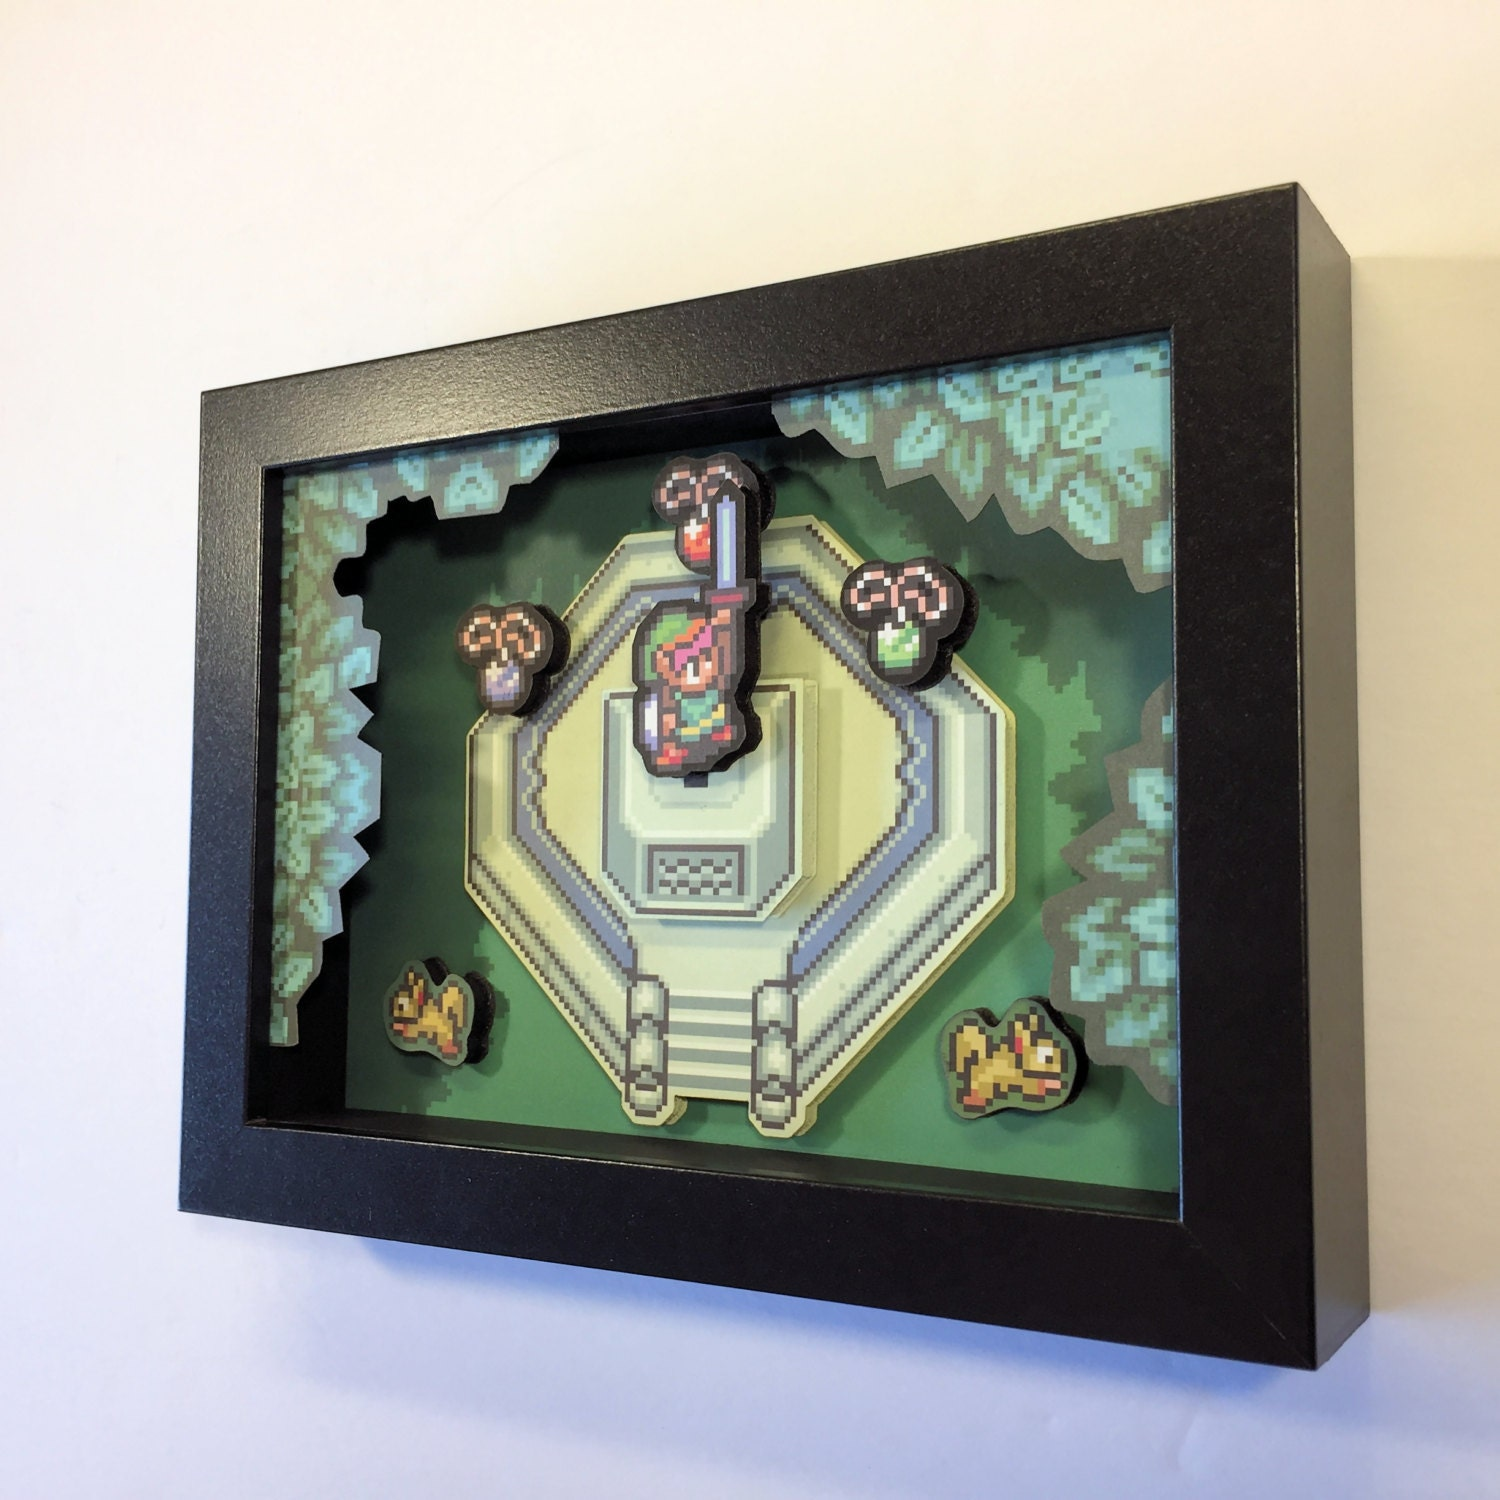 zelda 3d shadow box with master sword from legend of zelda a link to the past for nintendo in 16 bit style